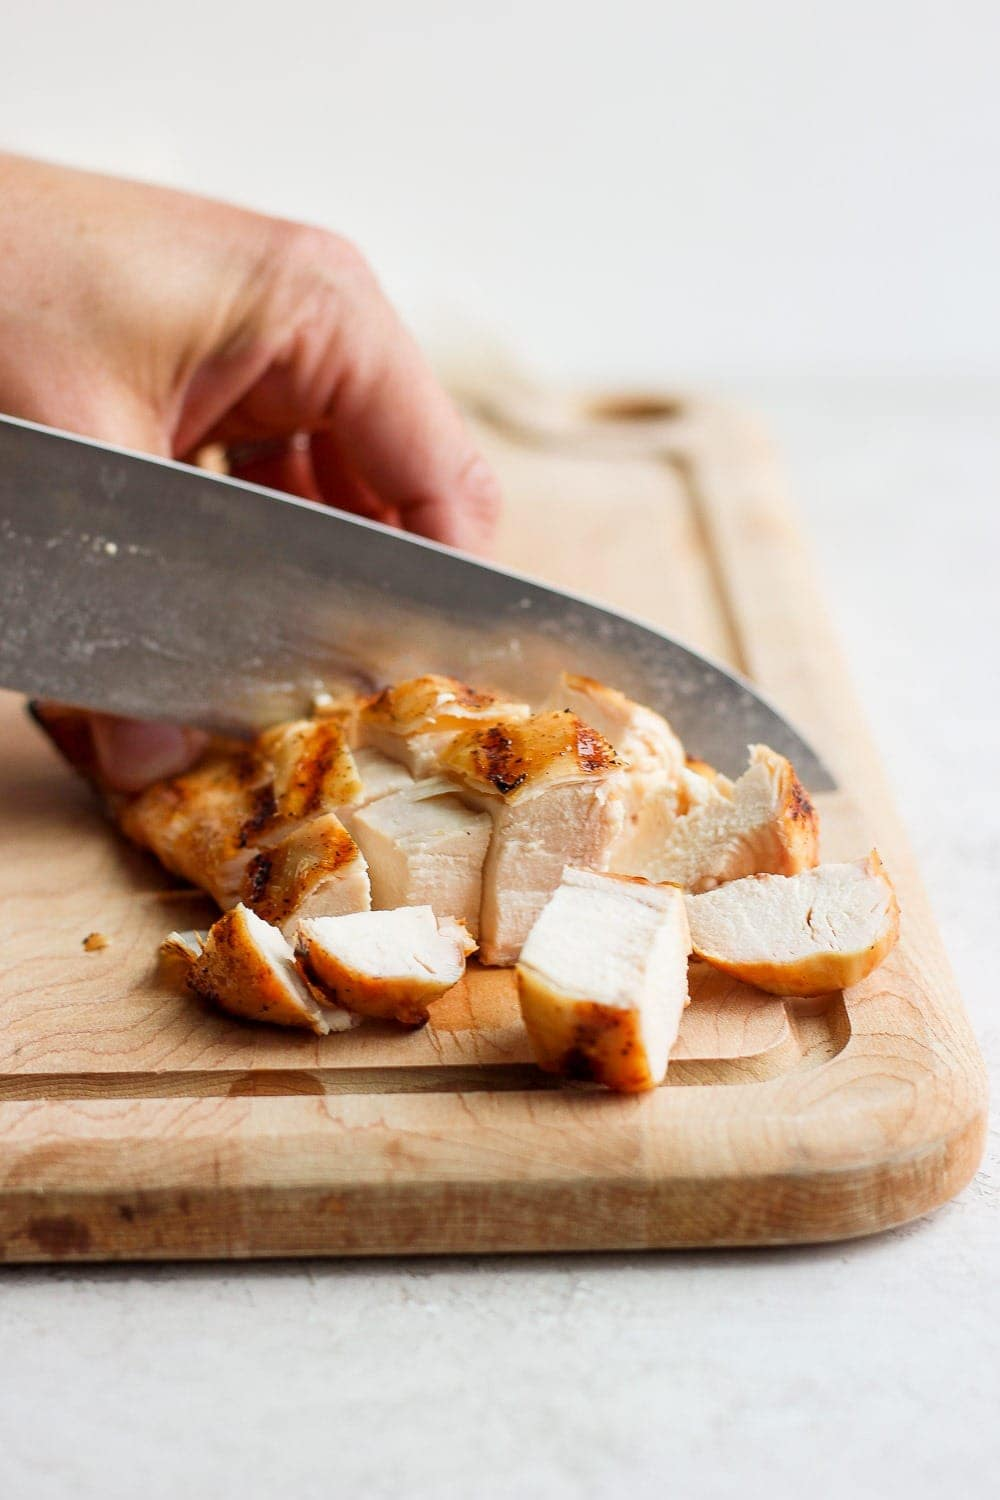 knife cutting chicken breast on cutting board